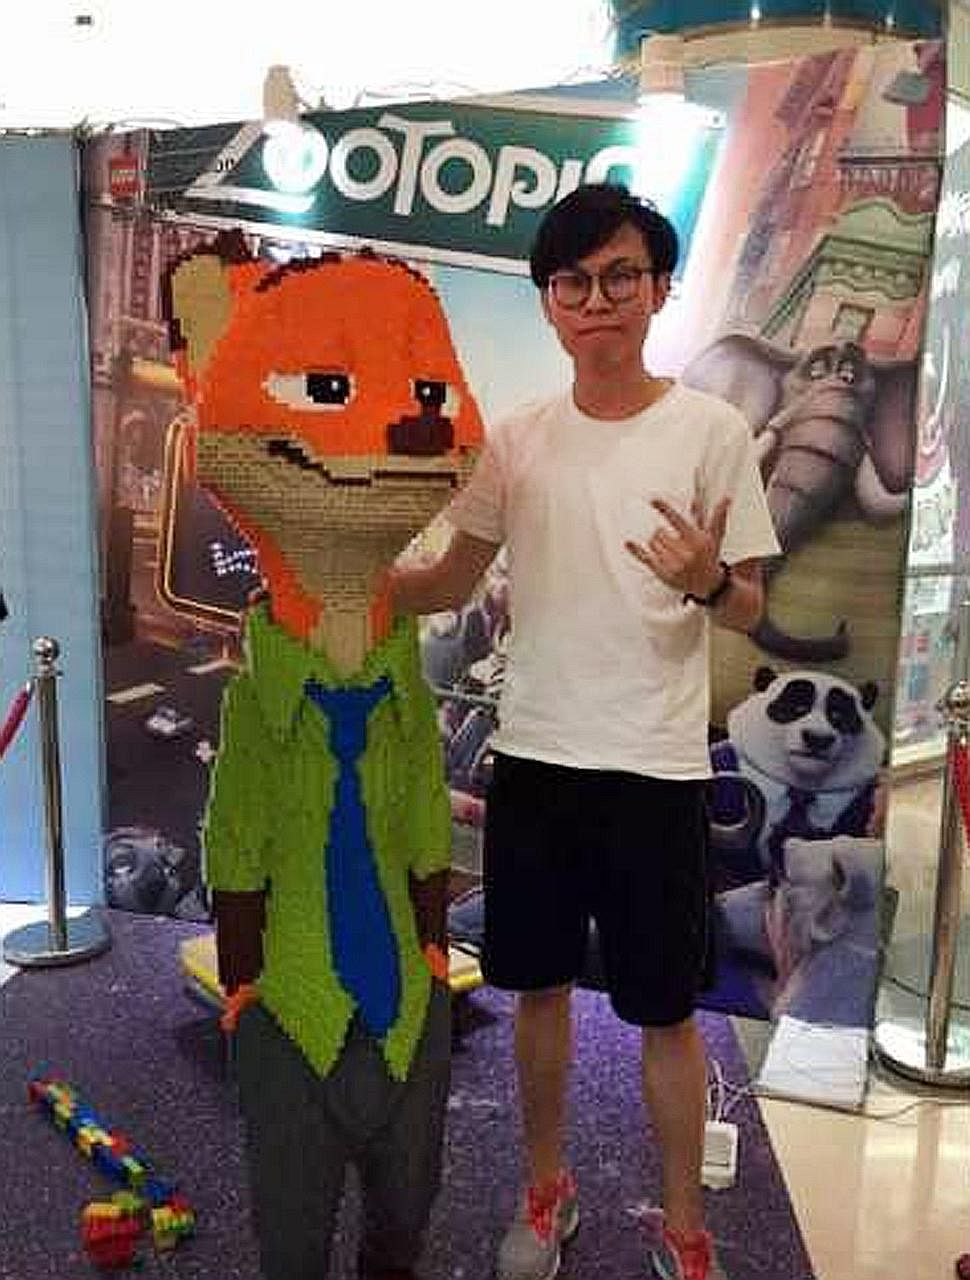 Mr Zhao (left) worked for three days and nights without a break in order to complete a sculpture of Disney character Nick Wilde, in time for an exhibition at a shopping mall in the Chinese city of Ningbo. The fox statue had been on display for only a